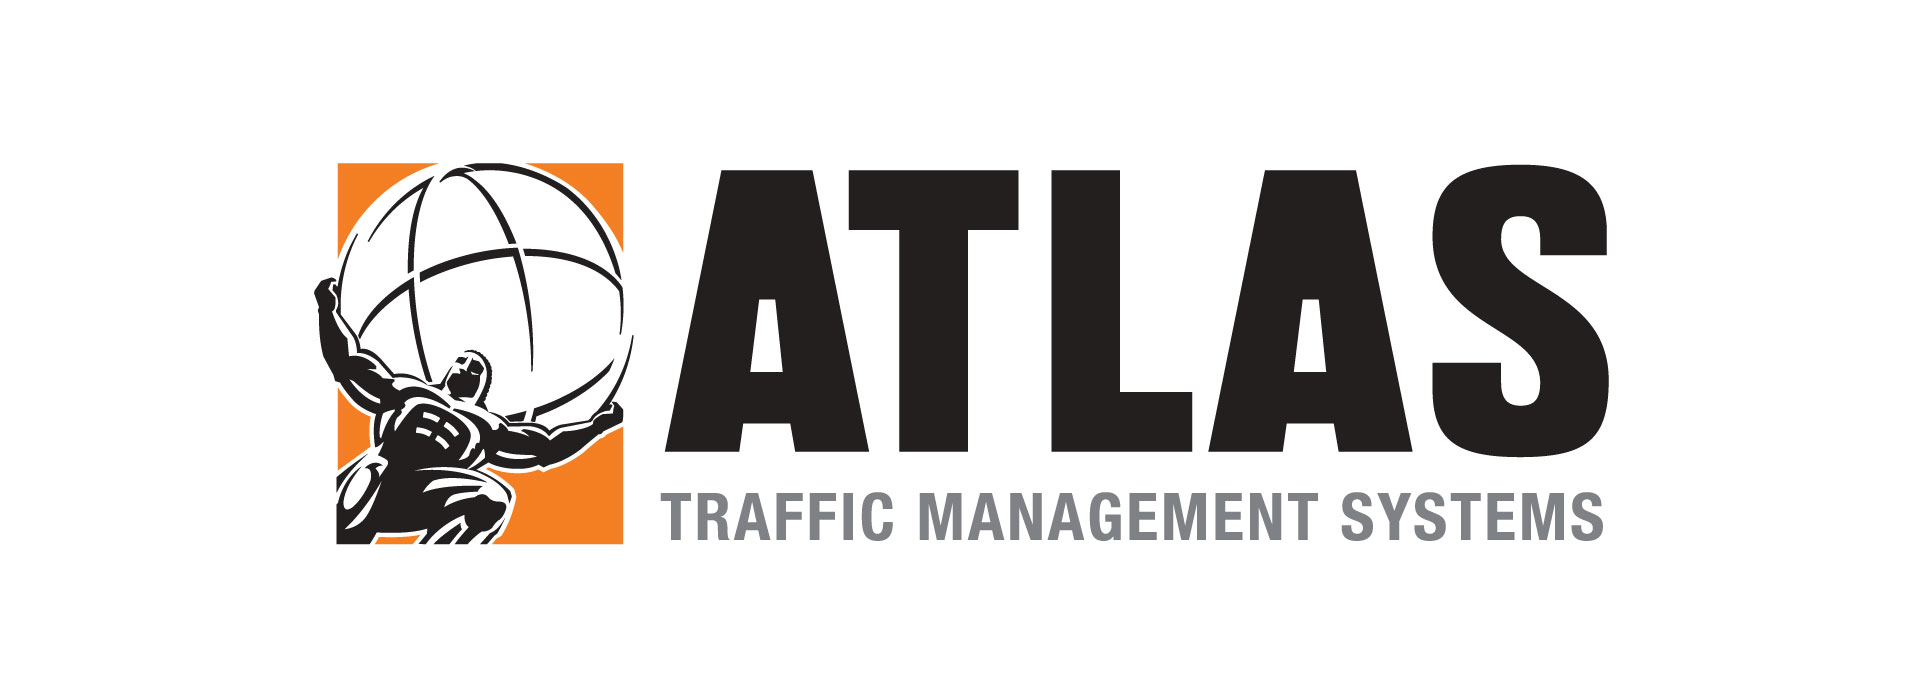 Starmark launches atlas traffic management services online for Ad agency traffic manager